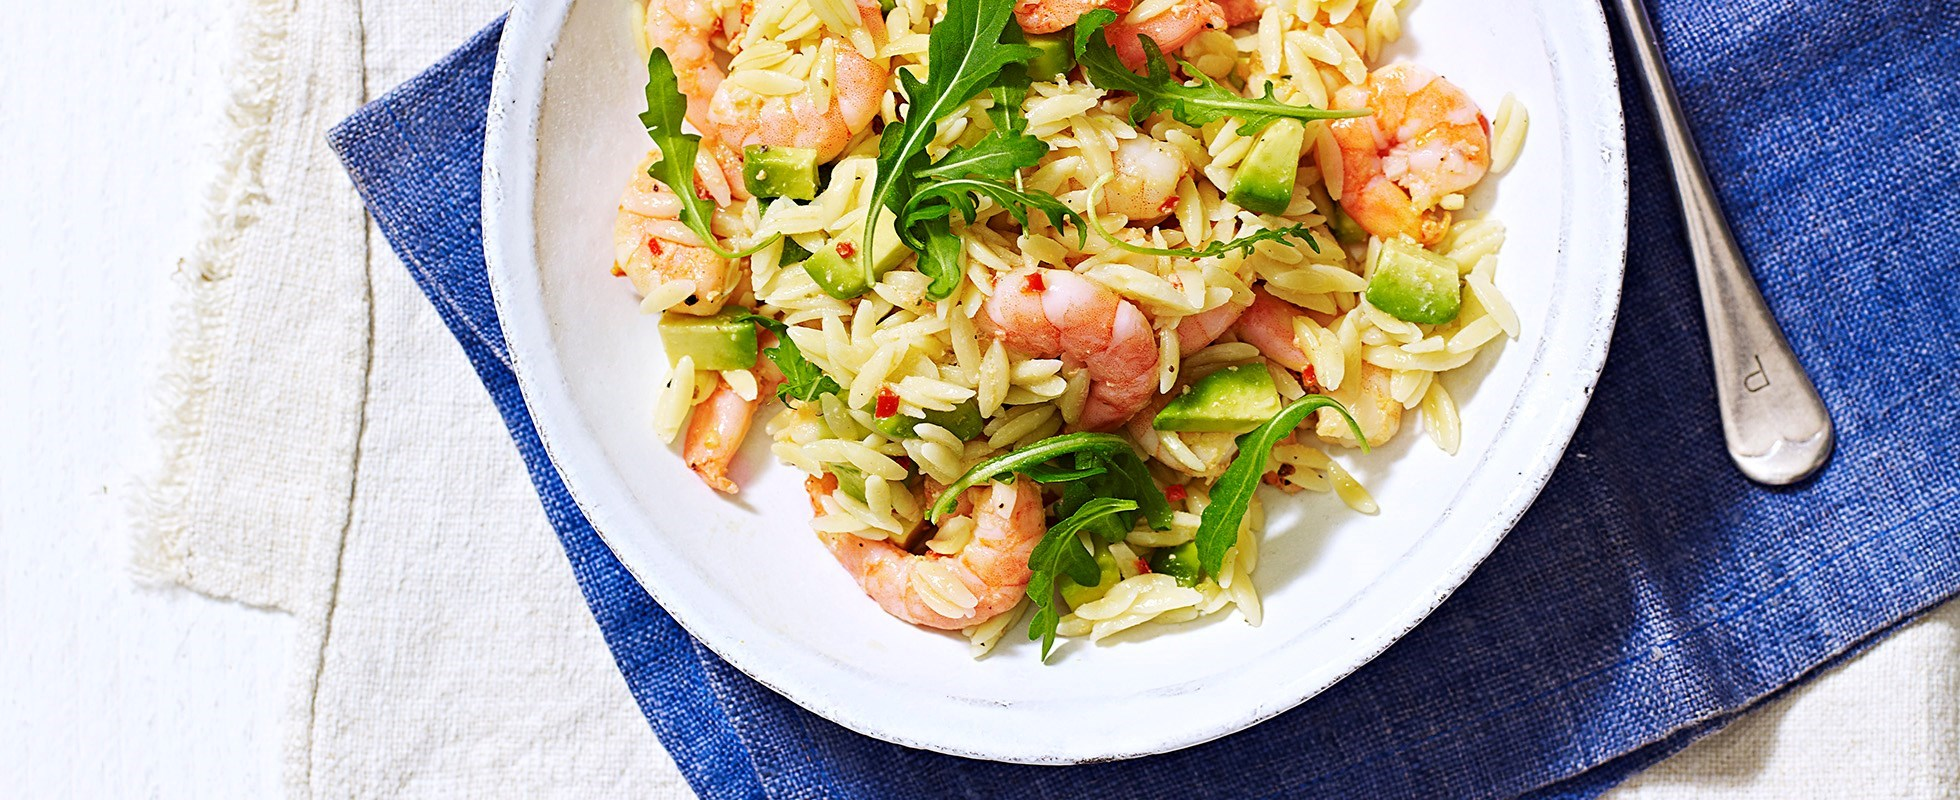 Best Ever Orzo Recipes - olive magazine